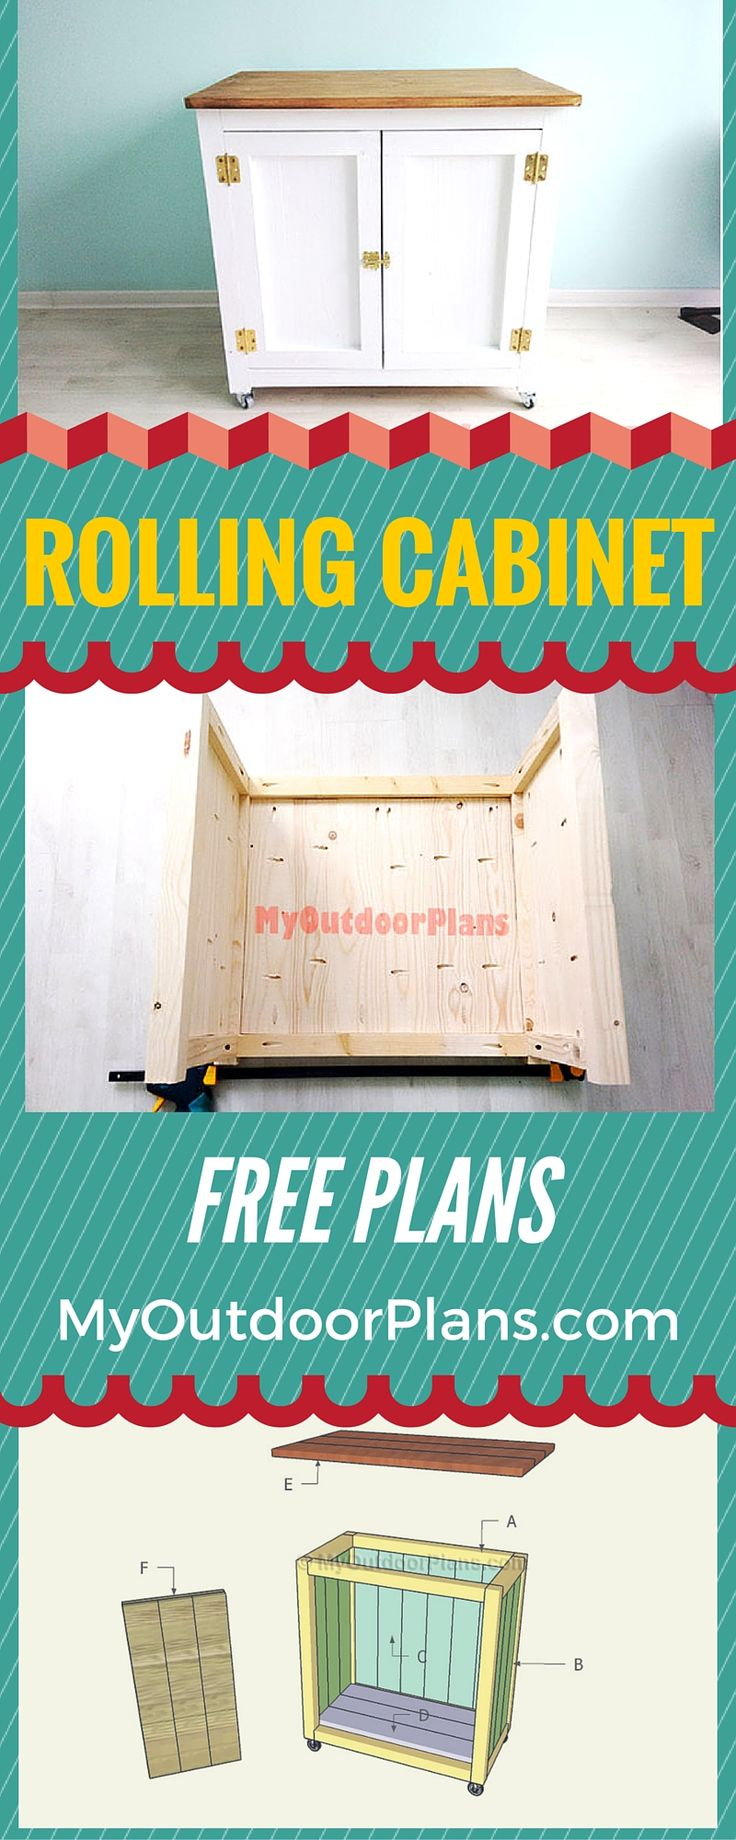 Free Rolling Cabinet Plans - Learn how to build a farmhouse style cabinet on caster wheels, so you can move it easily! howtospecialist.com